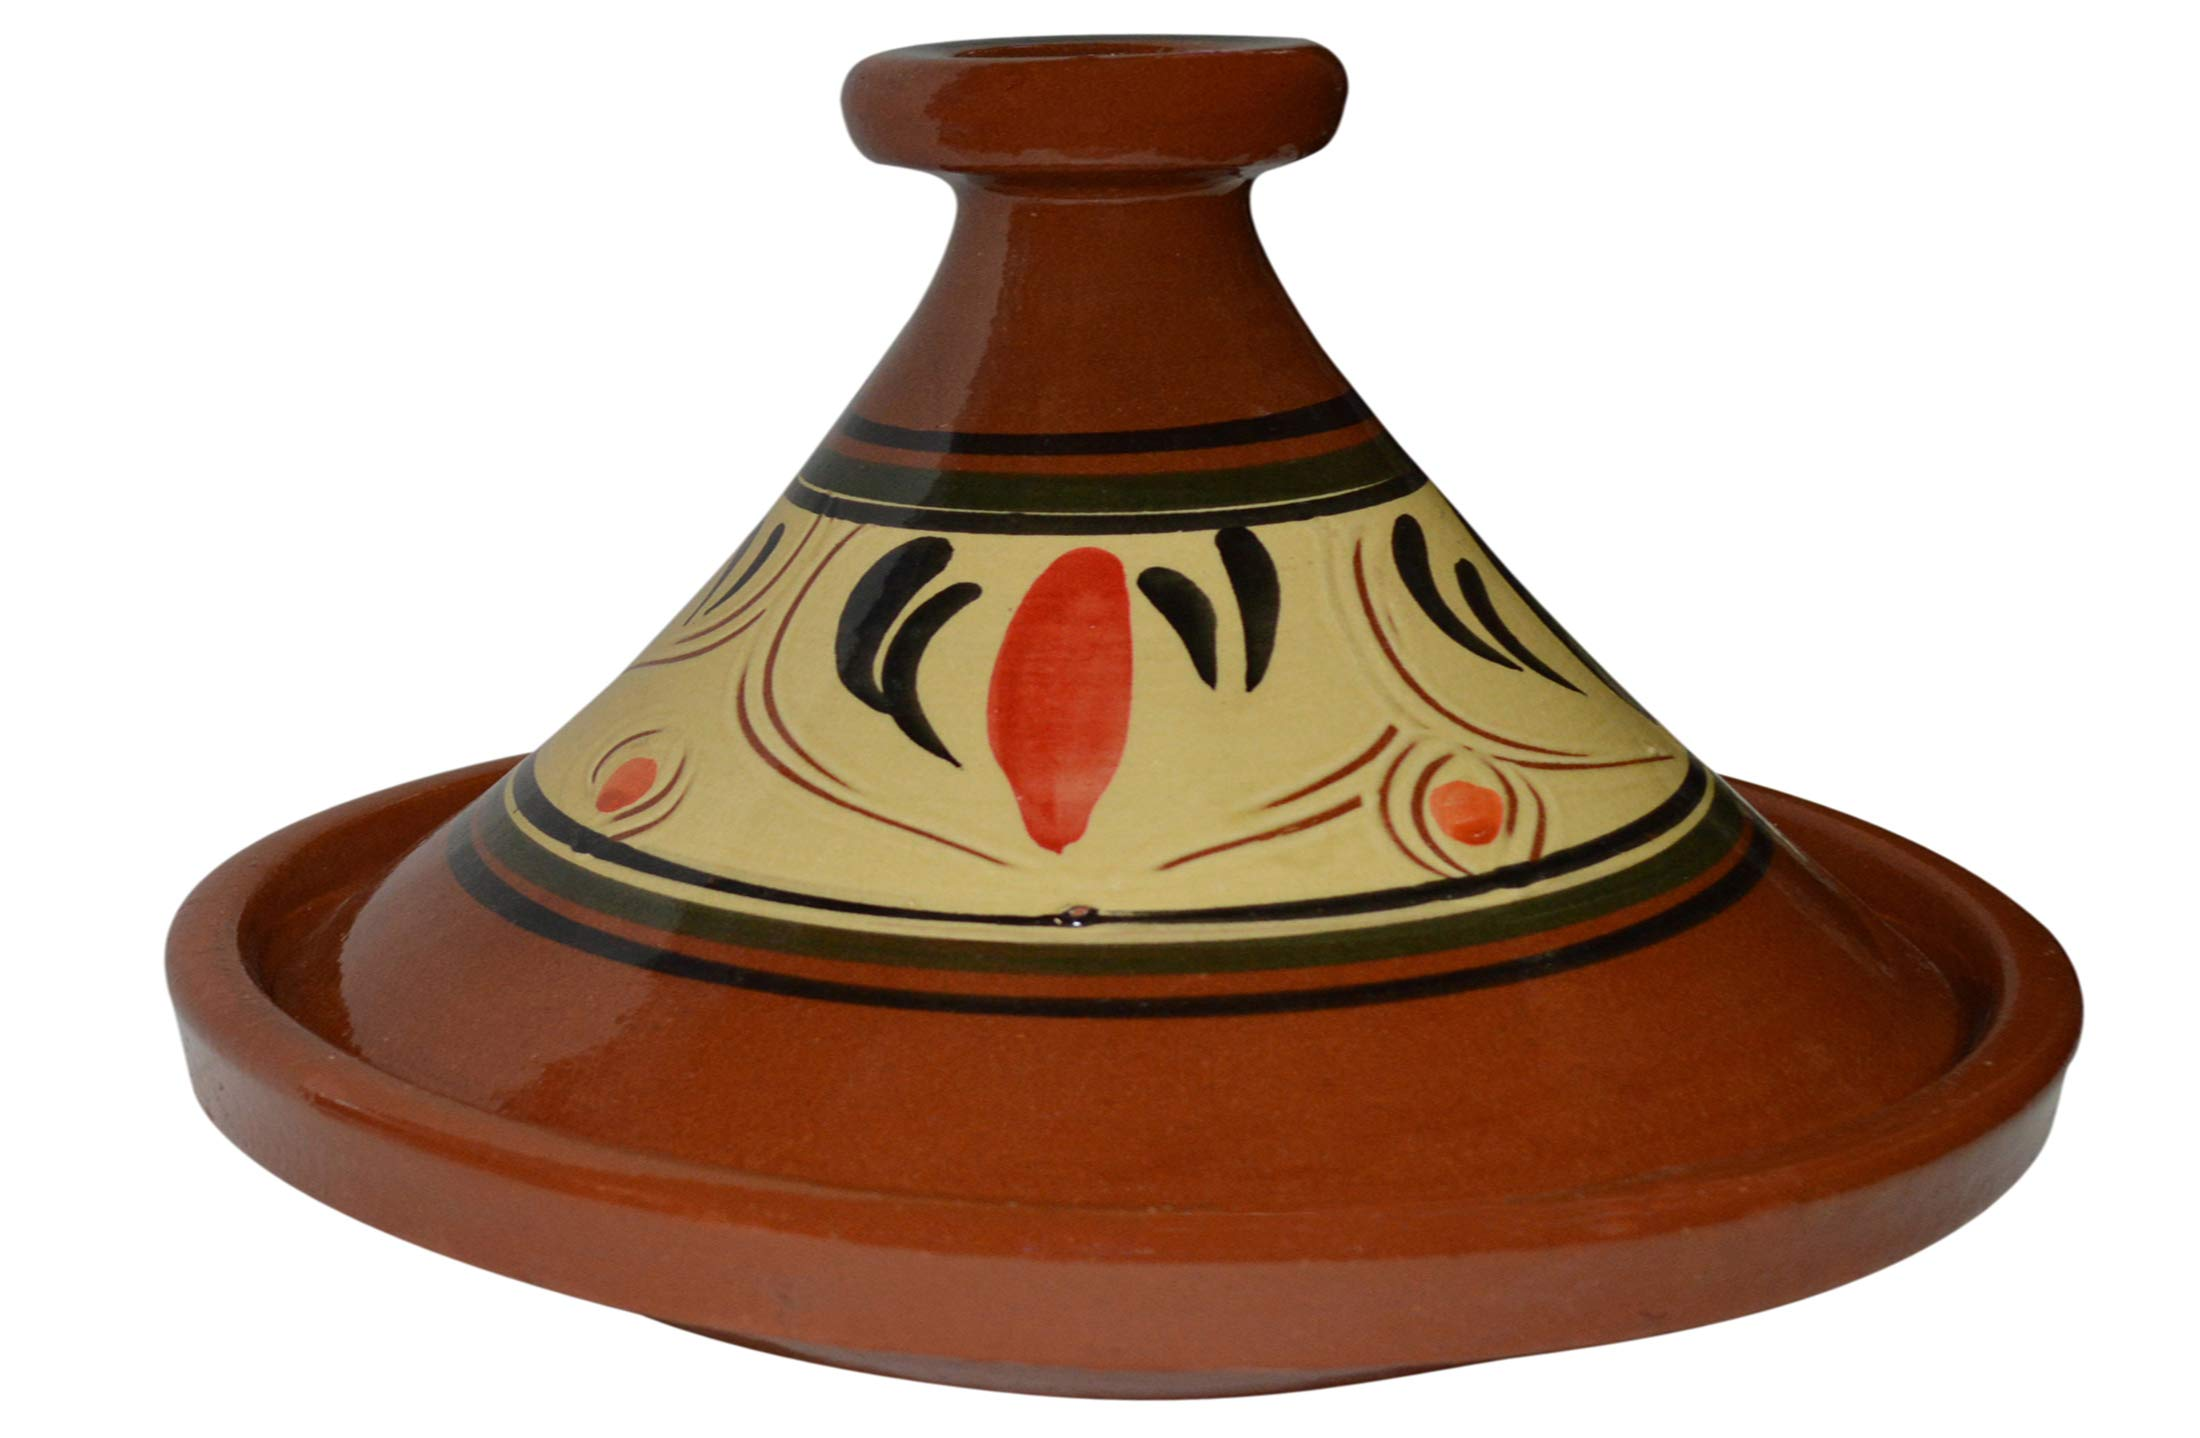 Moroccan Lead Free Cooking Tagine Glazed X-Large 13 Inches in Diameter Authentic Food by Cooking Tagines